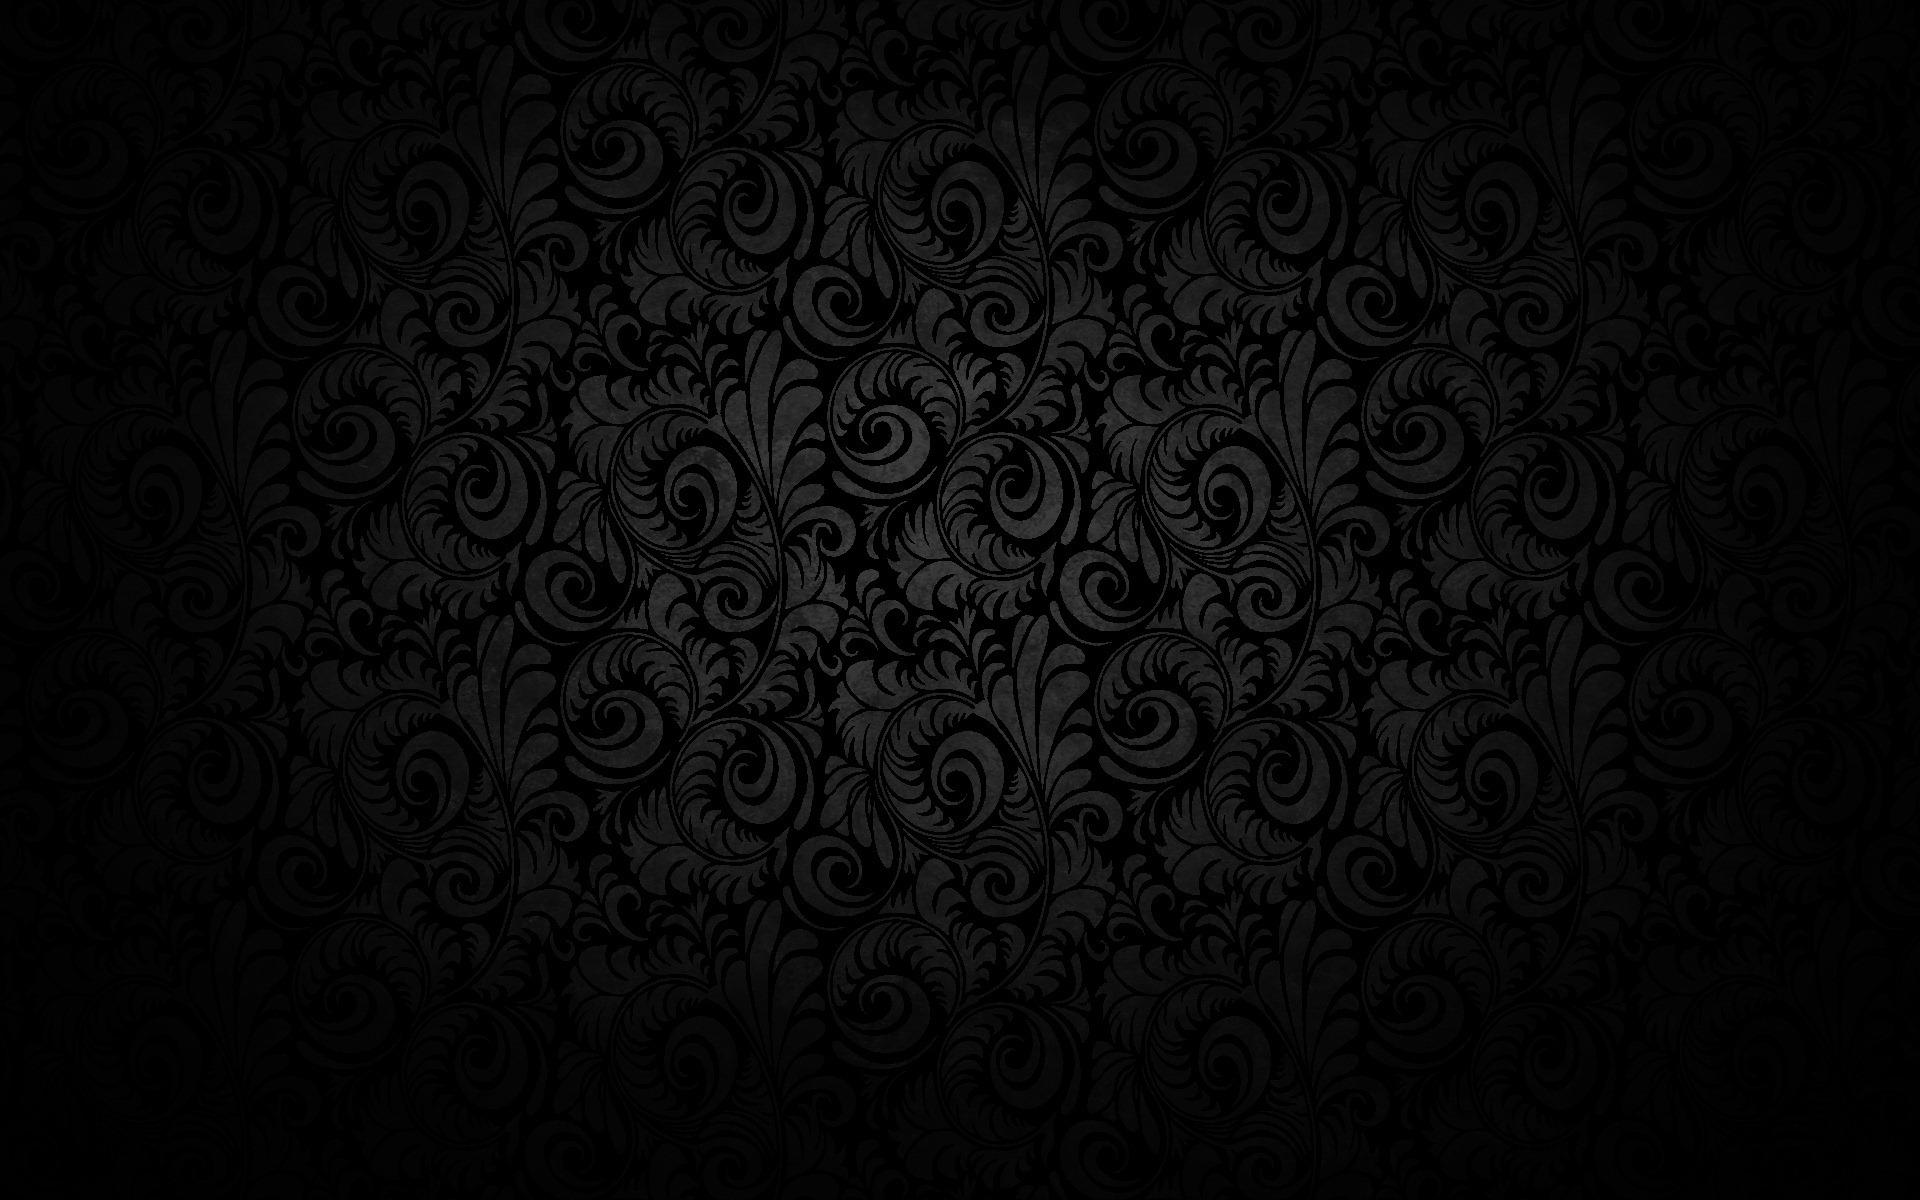 abstract wallpaper widescreen az hd wallpaper 52 stock 64 1920x1200